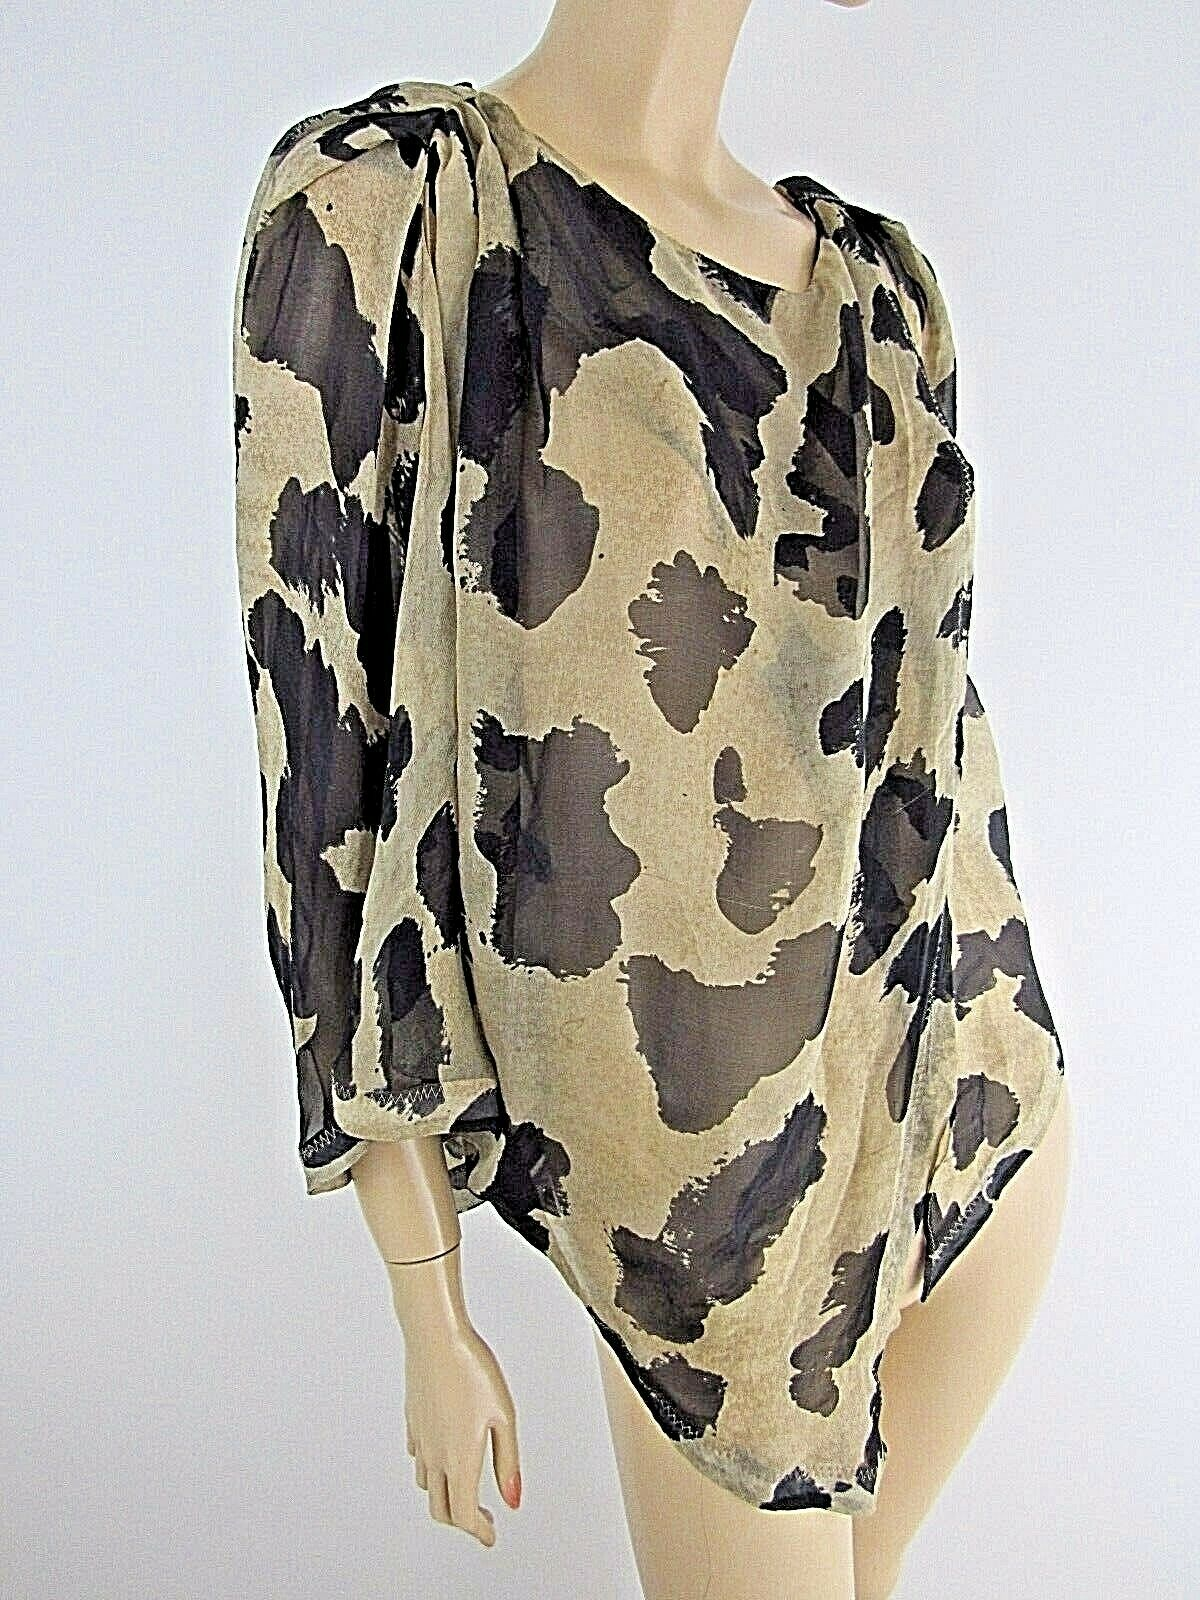 SEE BY CHLOE OVER-GrößeD LAYErot ASYMMETRICAL 100% SILK SHIRT-BLOUSE Größe 6